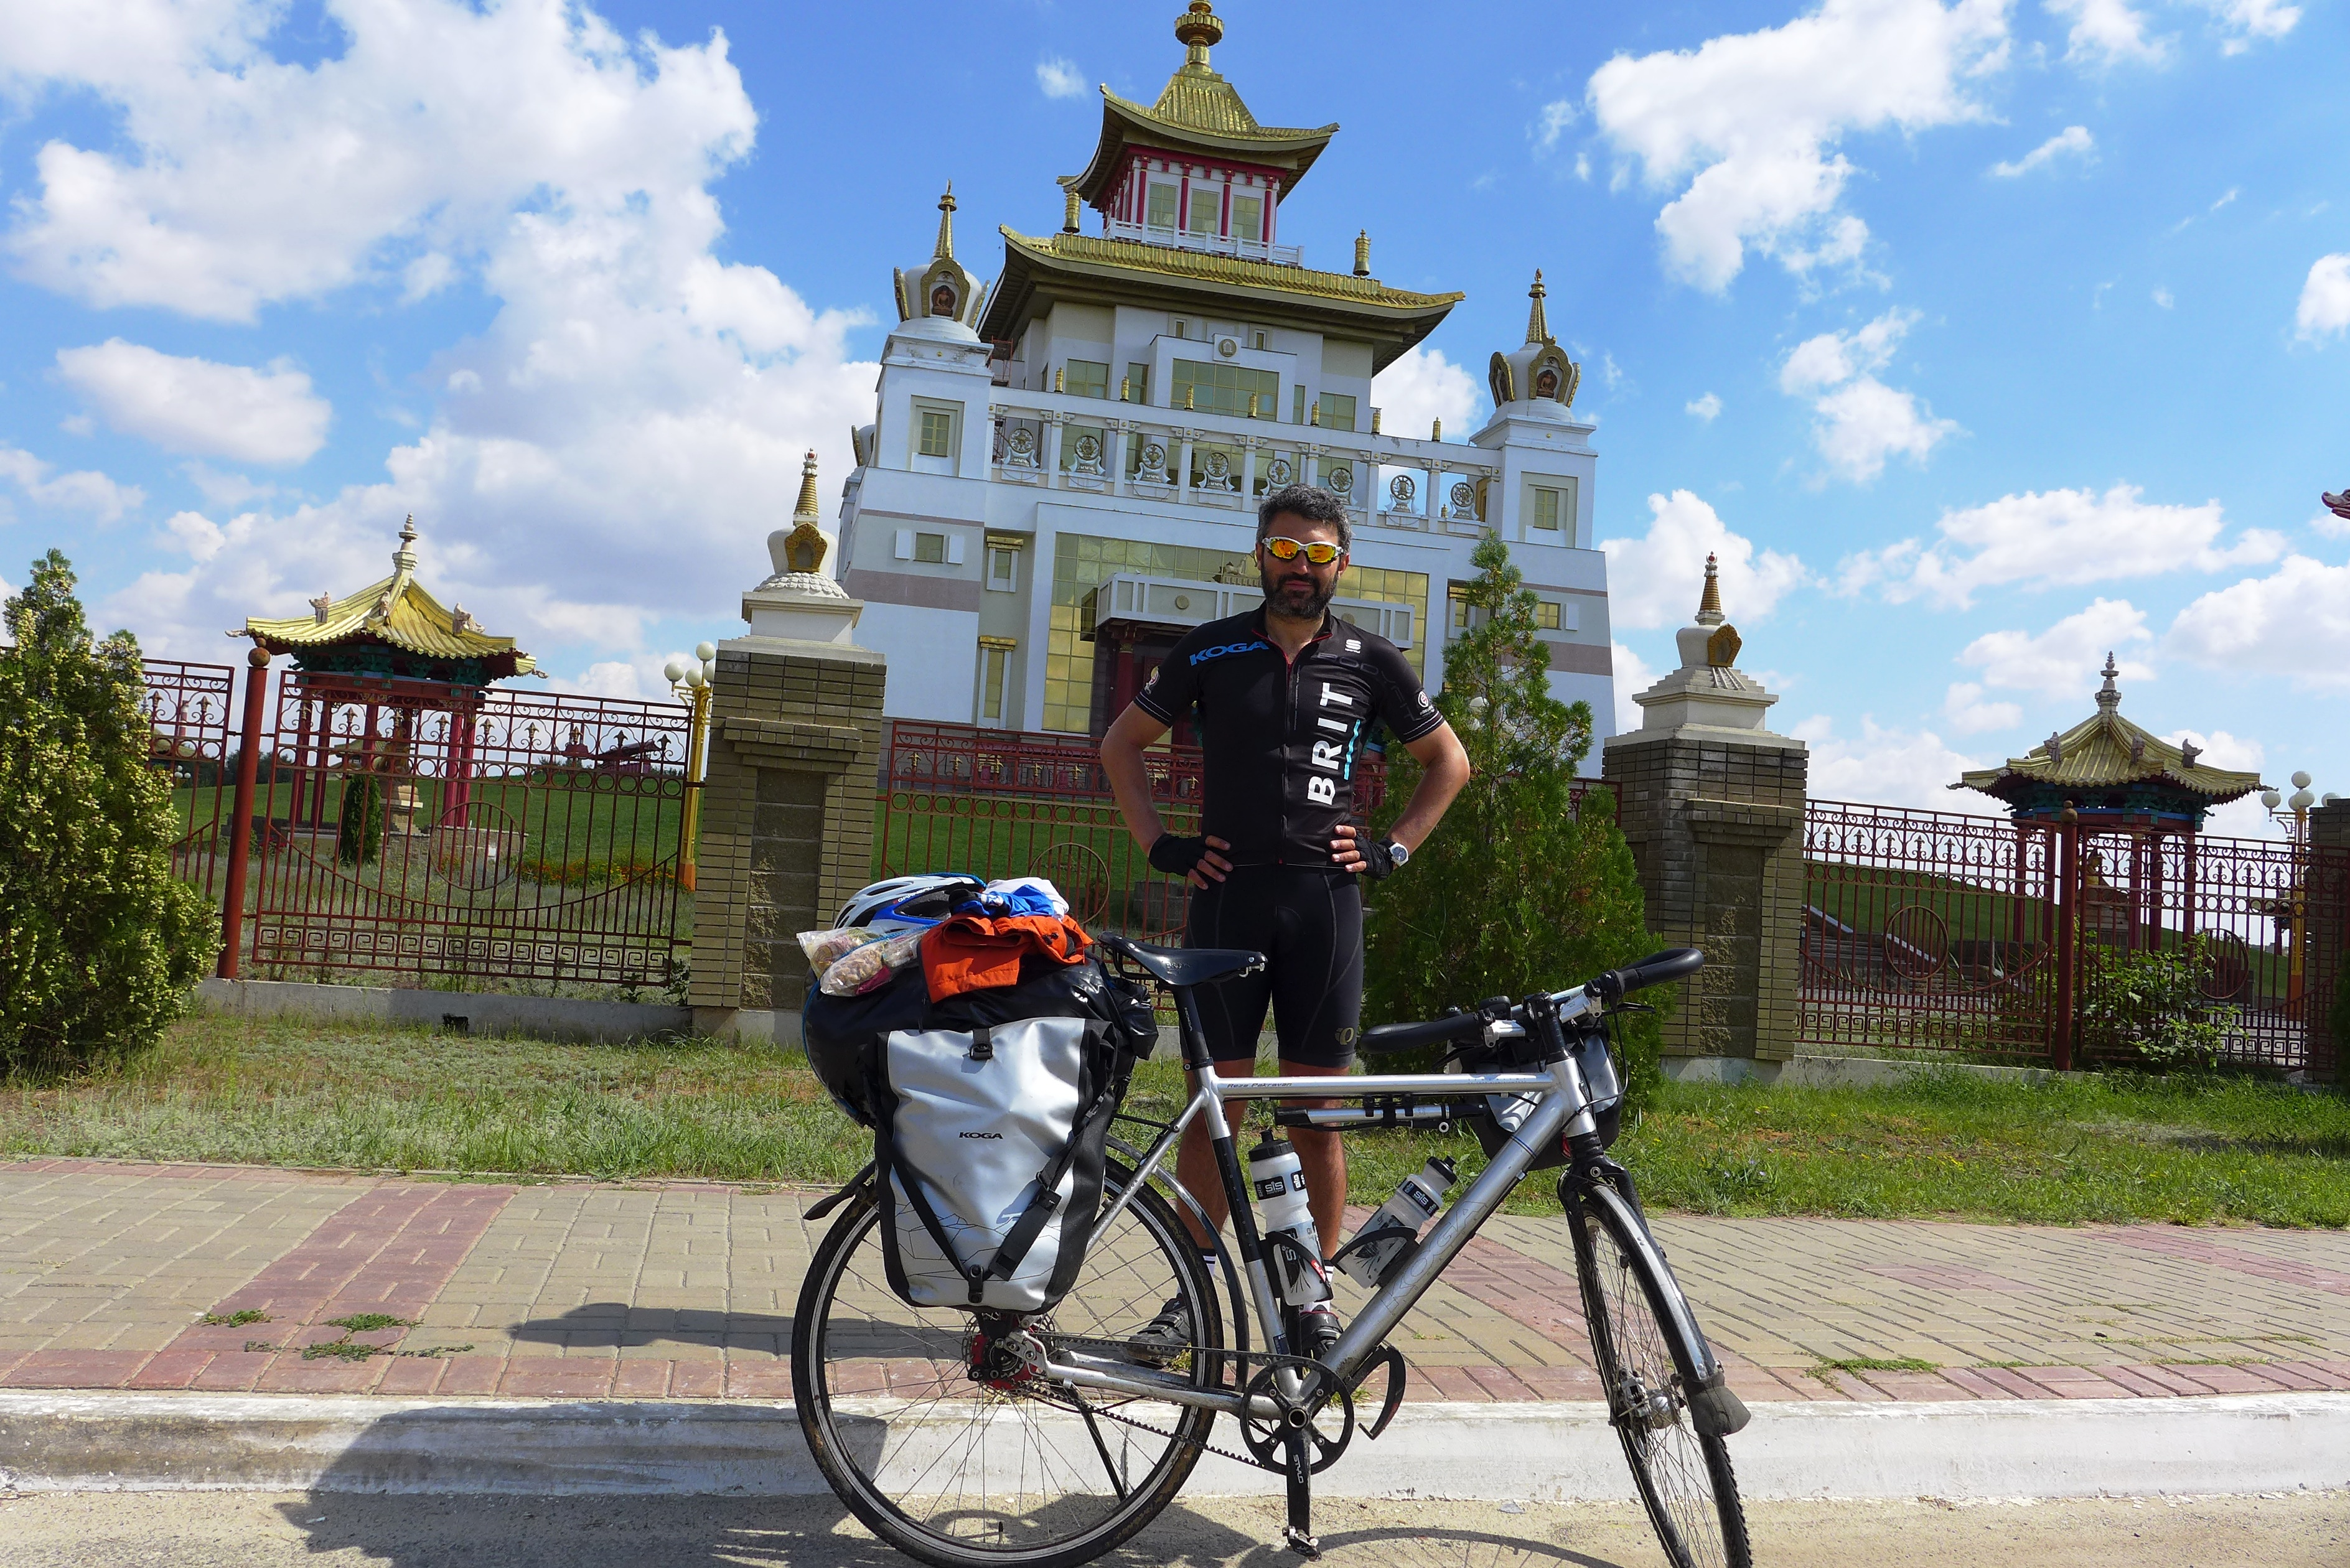 Reza standing with bike in front of temple